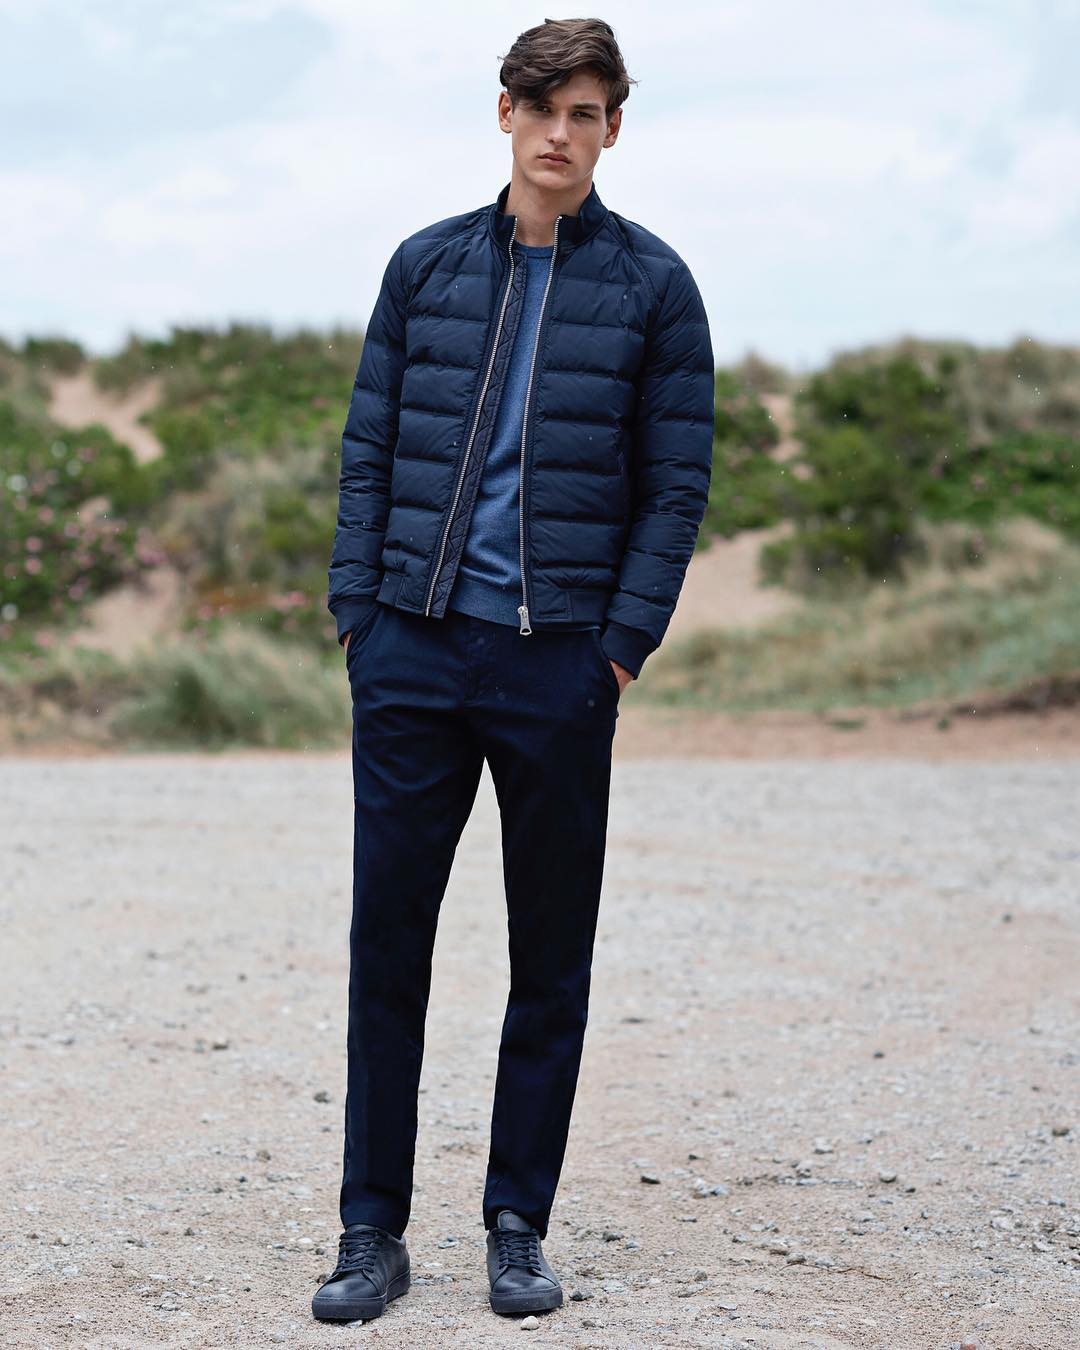 Stylish menswear by the brand Matinique